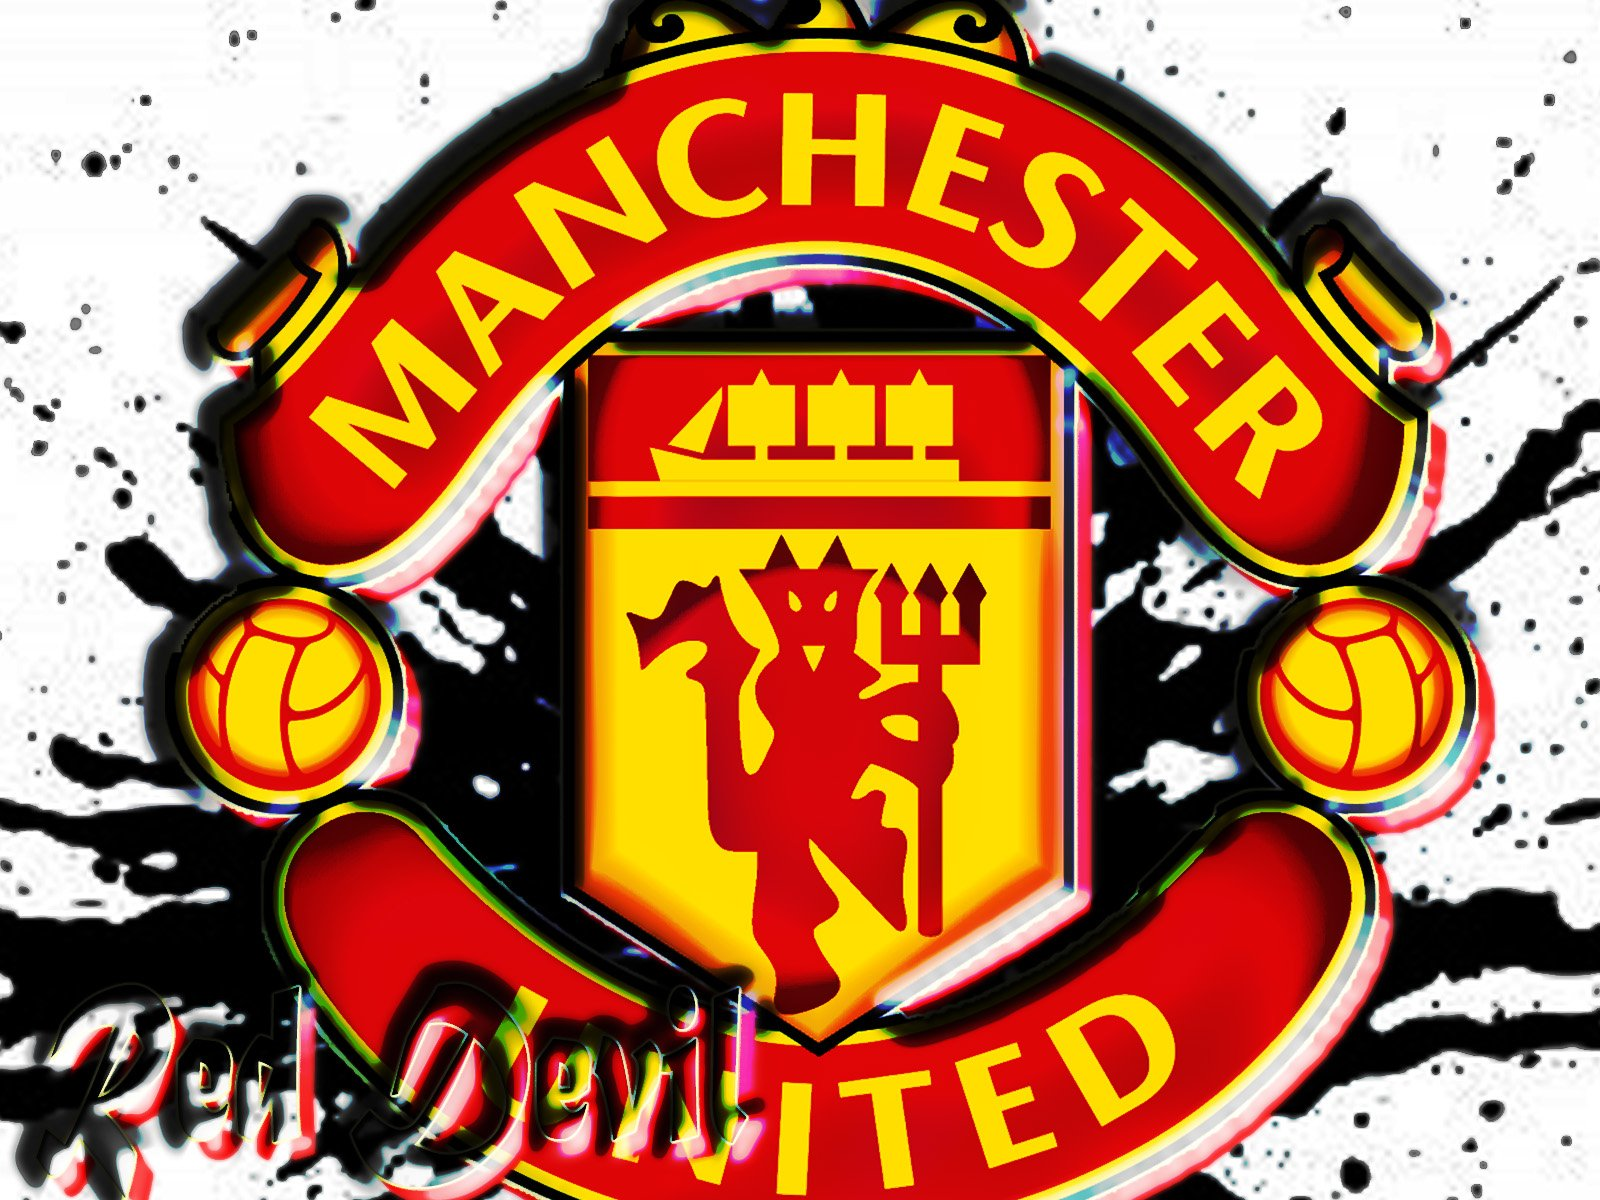 Manchester united iphone wallpaper tumblr - Back Gallery For Manchester United Logo Wallpaper 3d